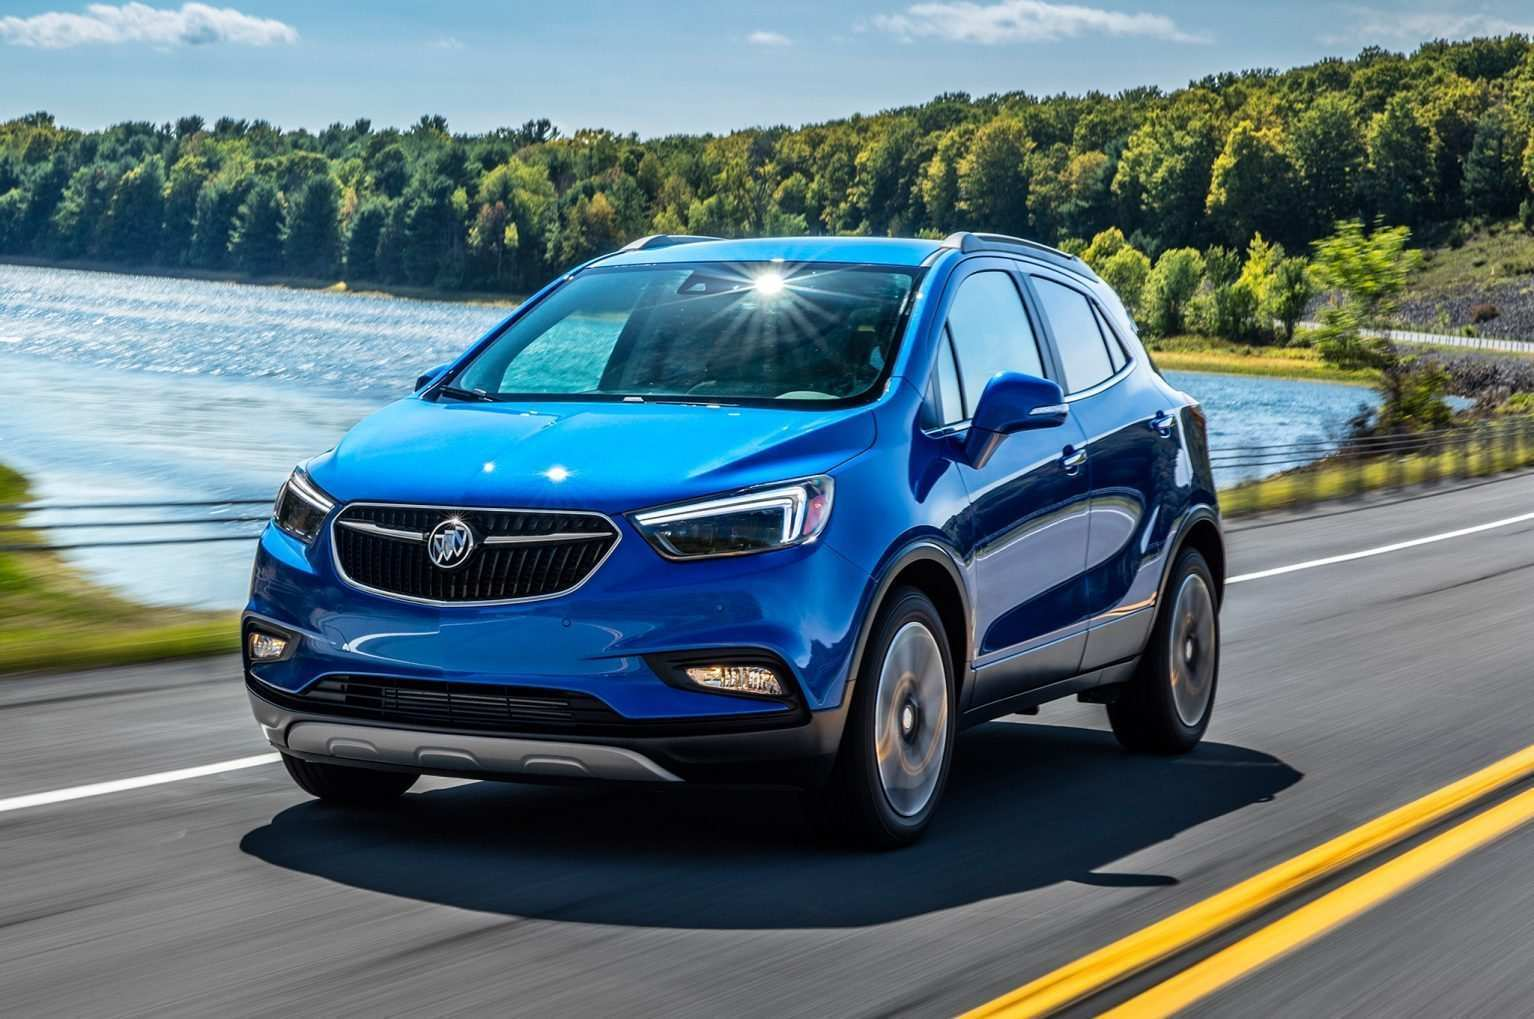 24 All New 2019 Buick Encore Release Date Engine Price for 2019 Buick Encore Release Date Engine